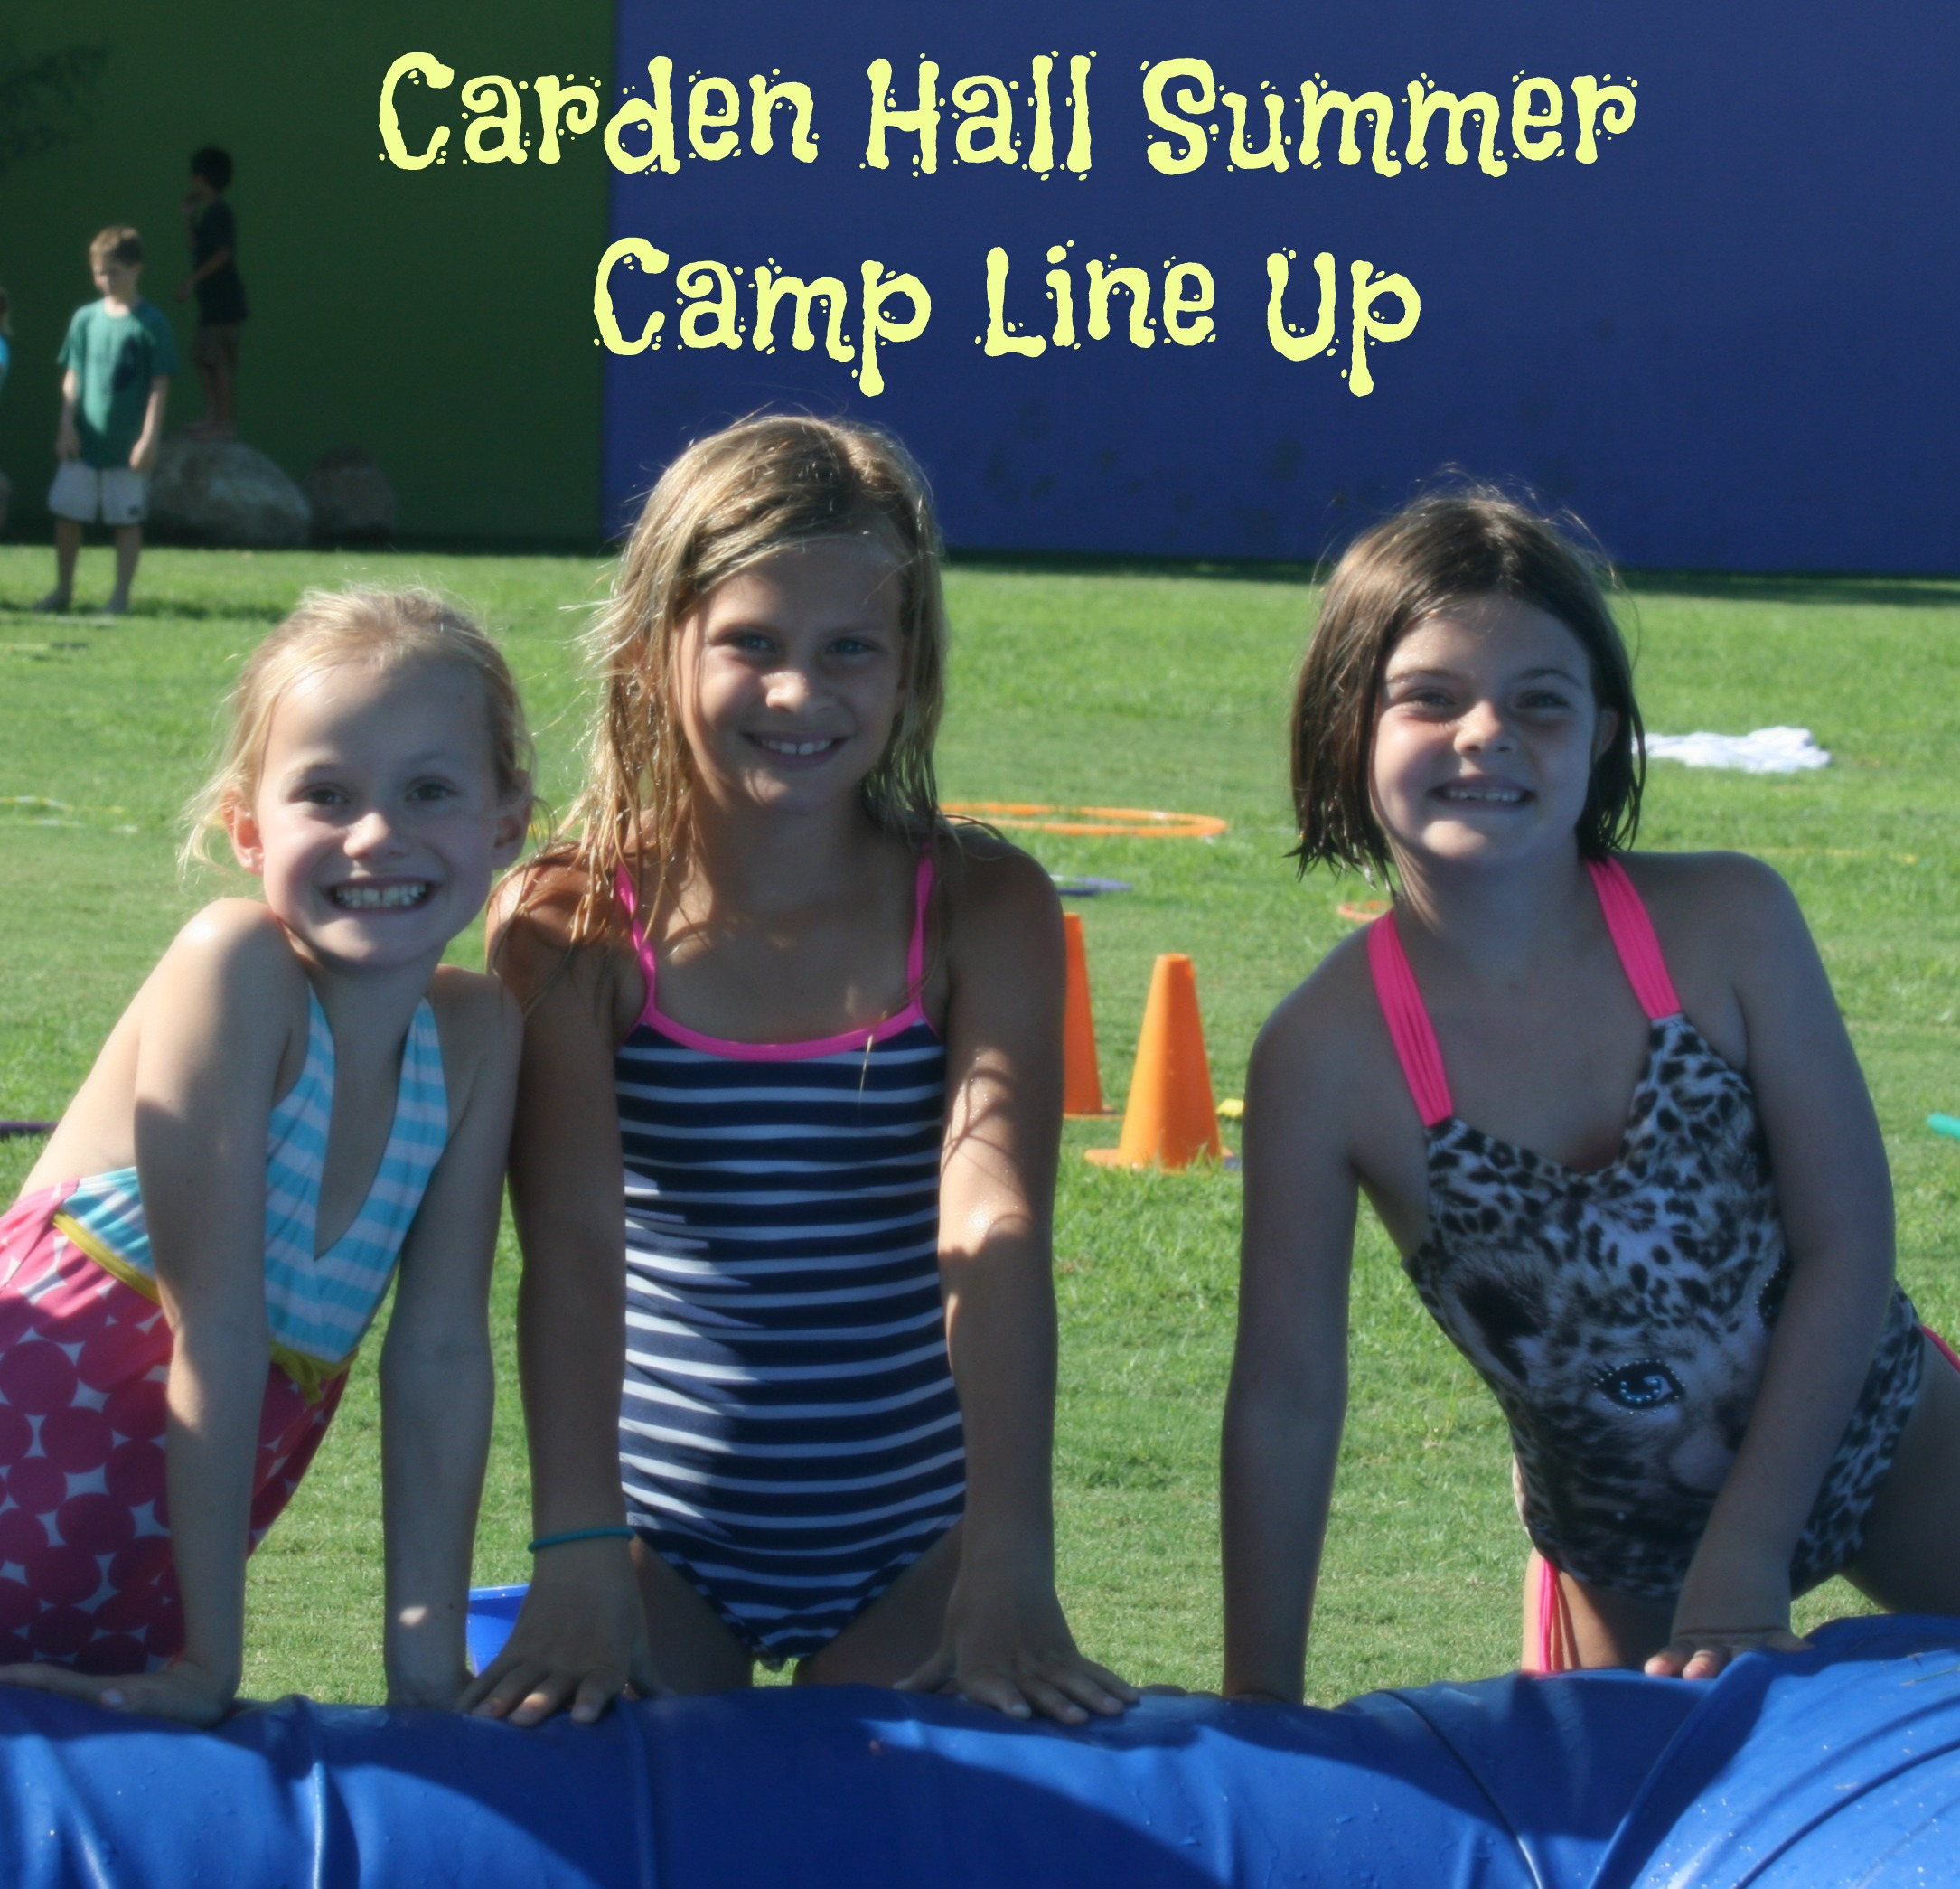 Carden Hall Summer Camp